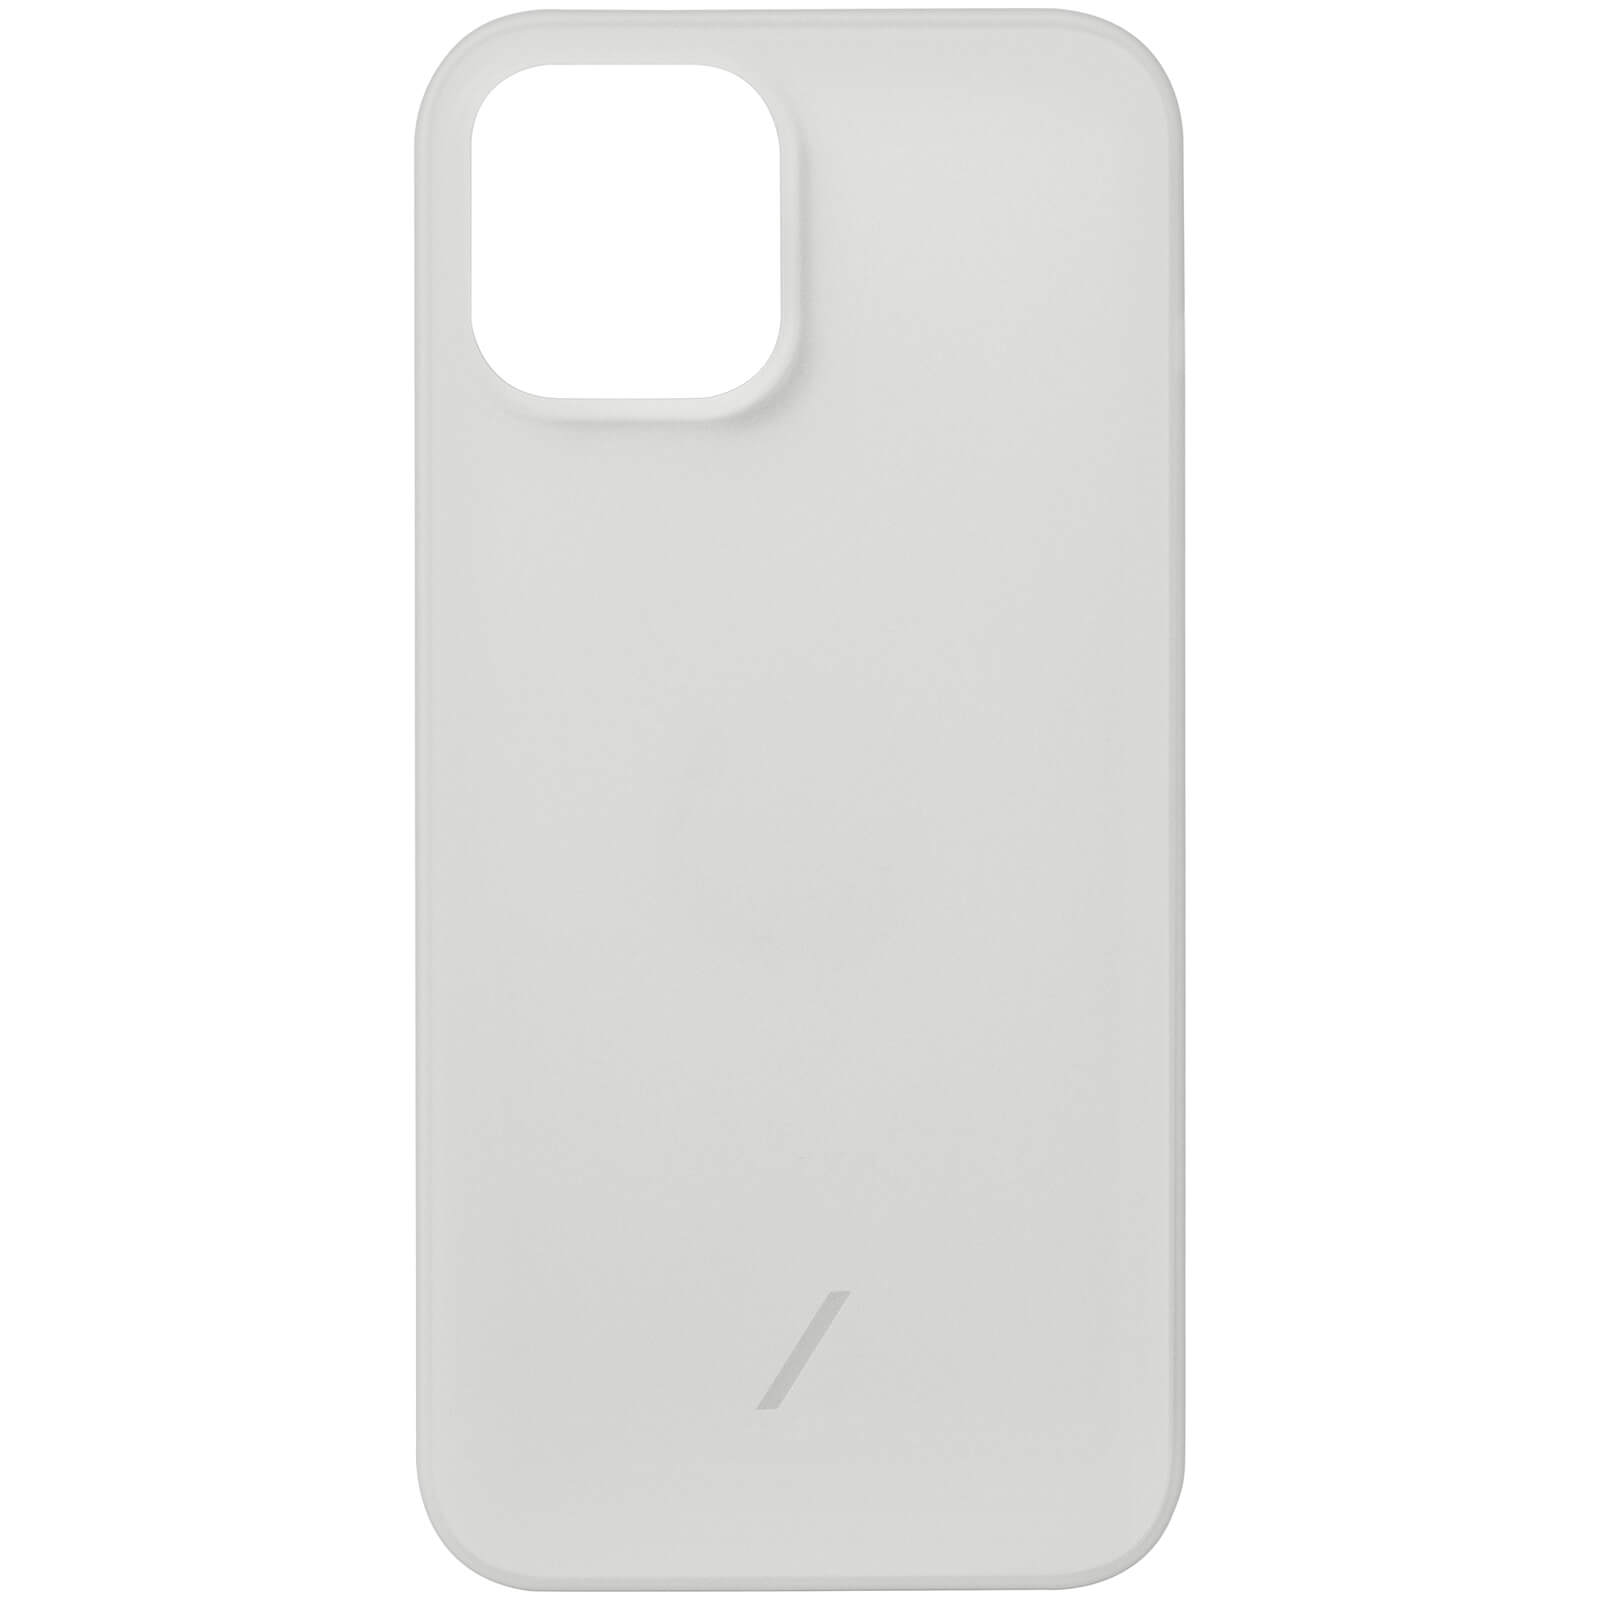 Native Union Clic Air Anti-Bacterial iPhone Case - Frost - 12/12 Pro